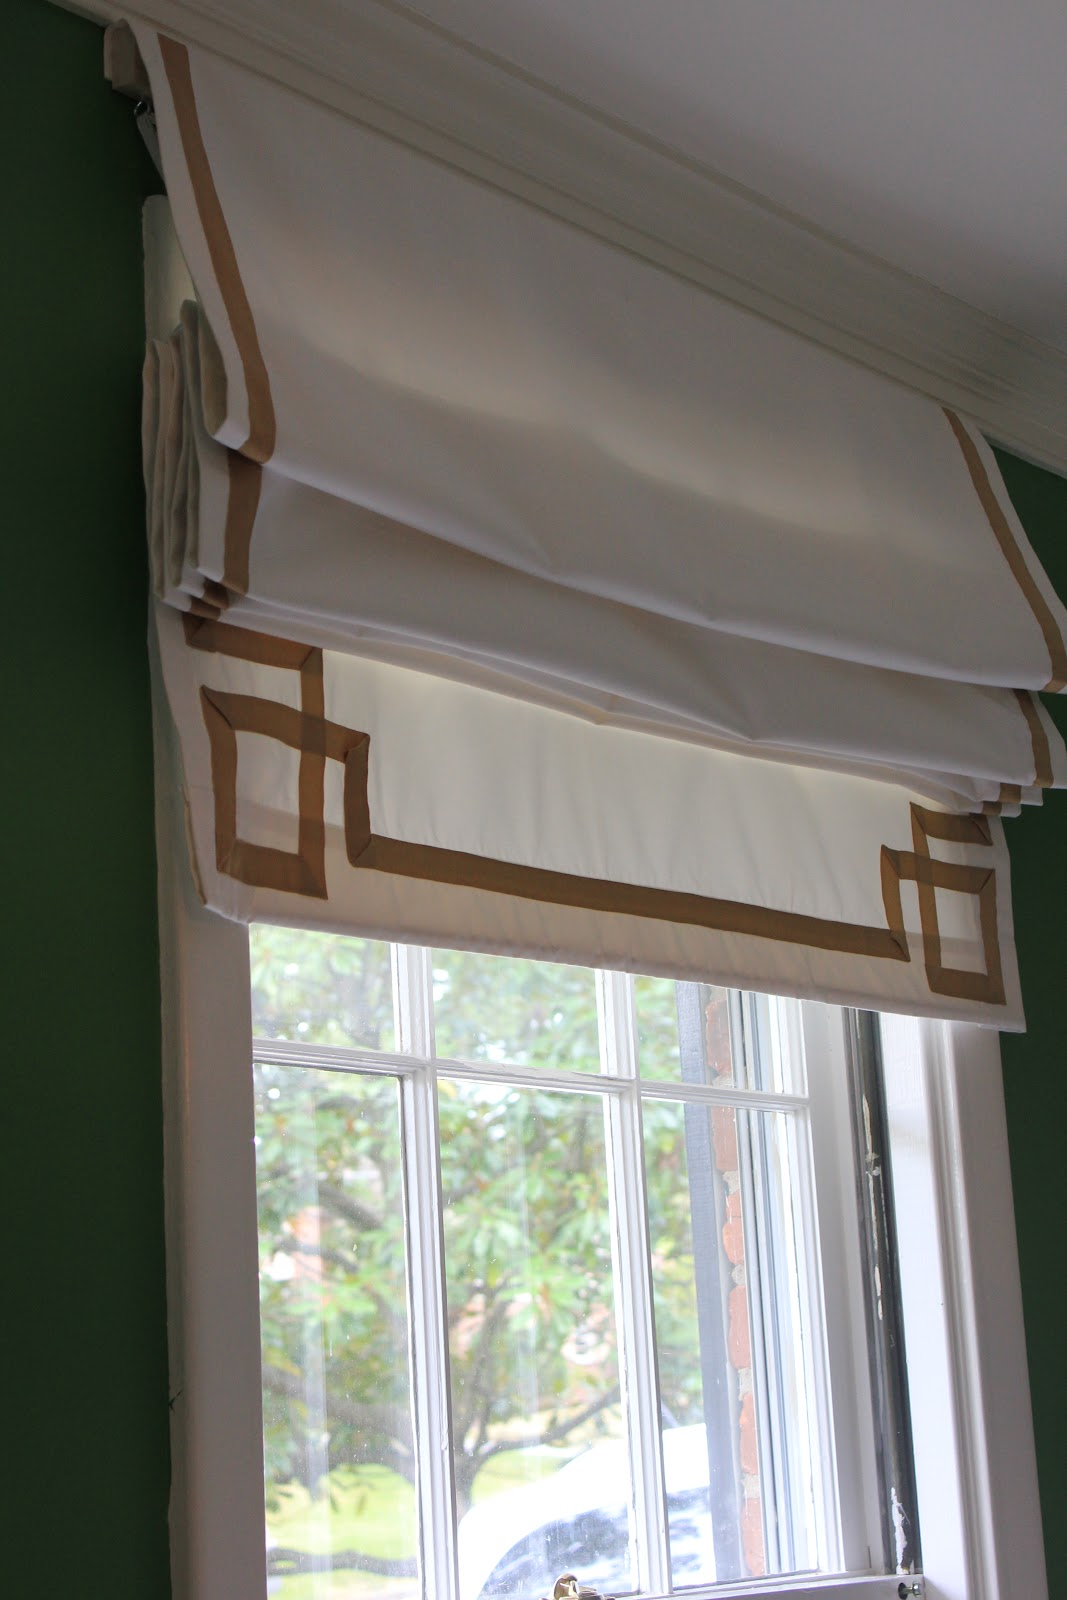 Westhampton Diy How To Make A Roman Shade From Curtain With Or Without Sewing Machine